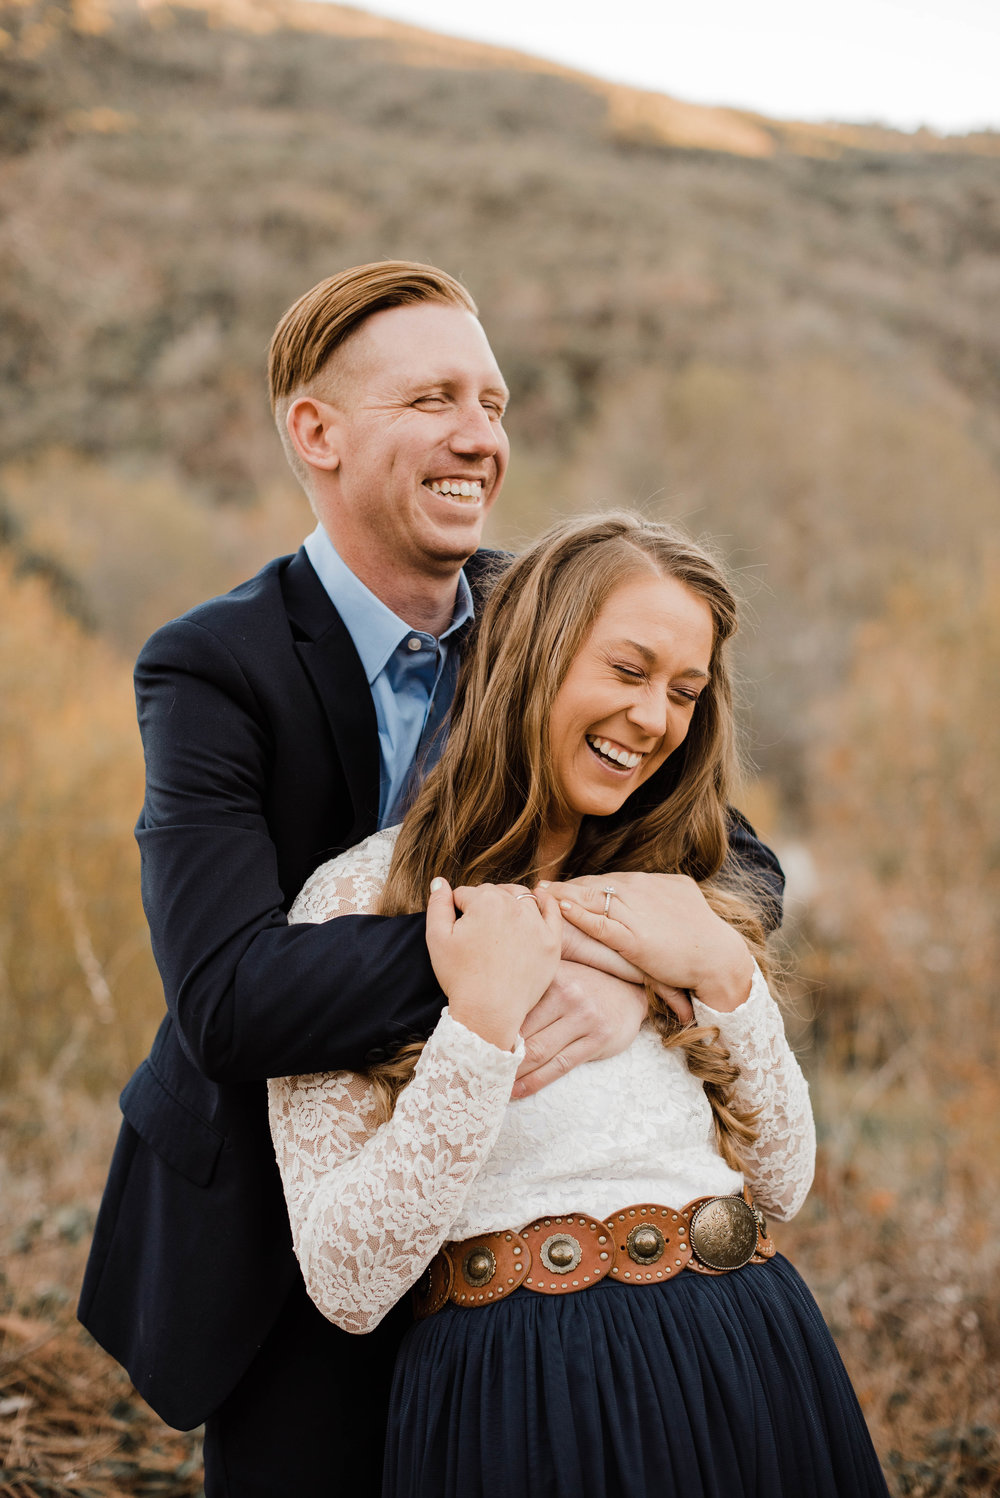 Daniel & Kailey - thurman flats